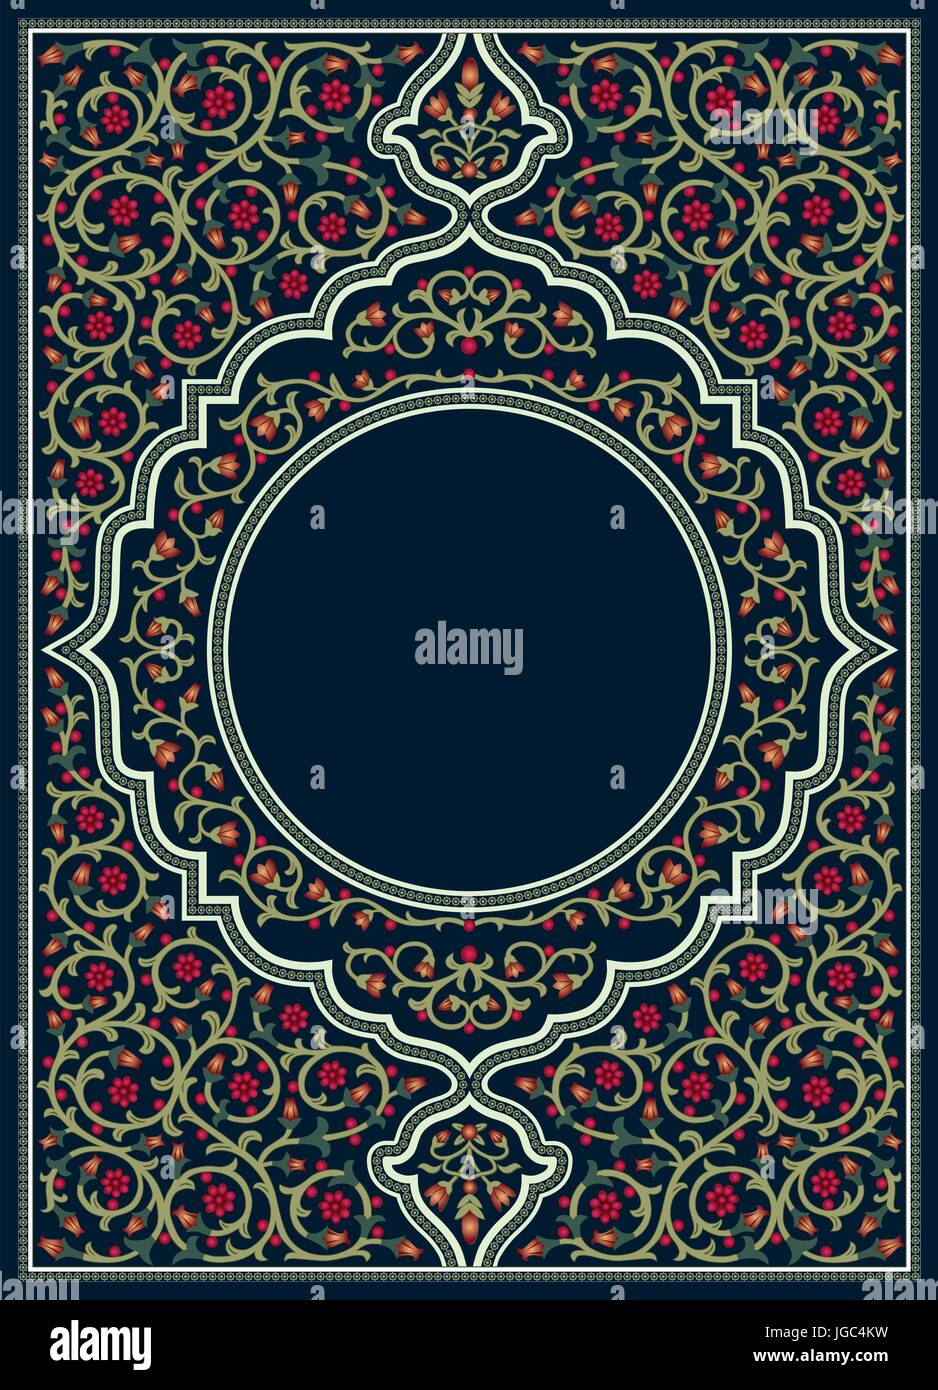 Islamic Book Cover Design Vector ~ Prayer book cover islamic style with floral ornament stock